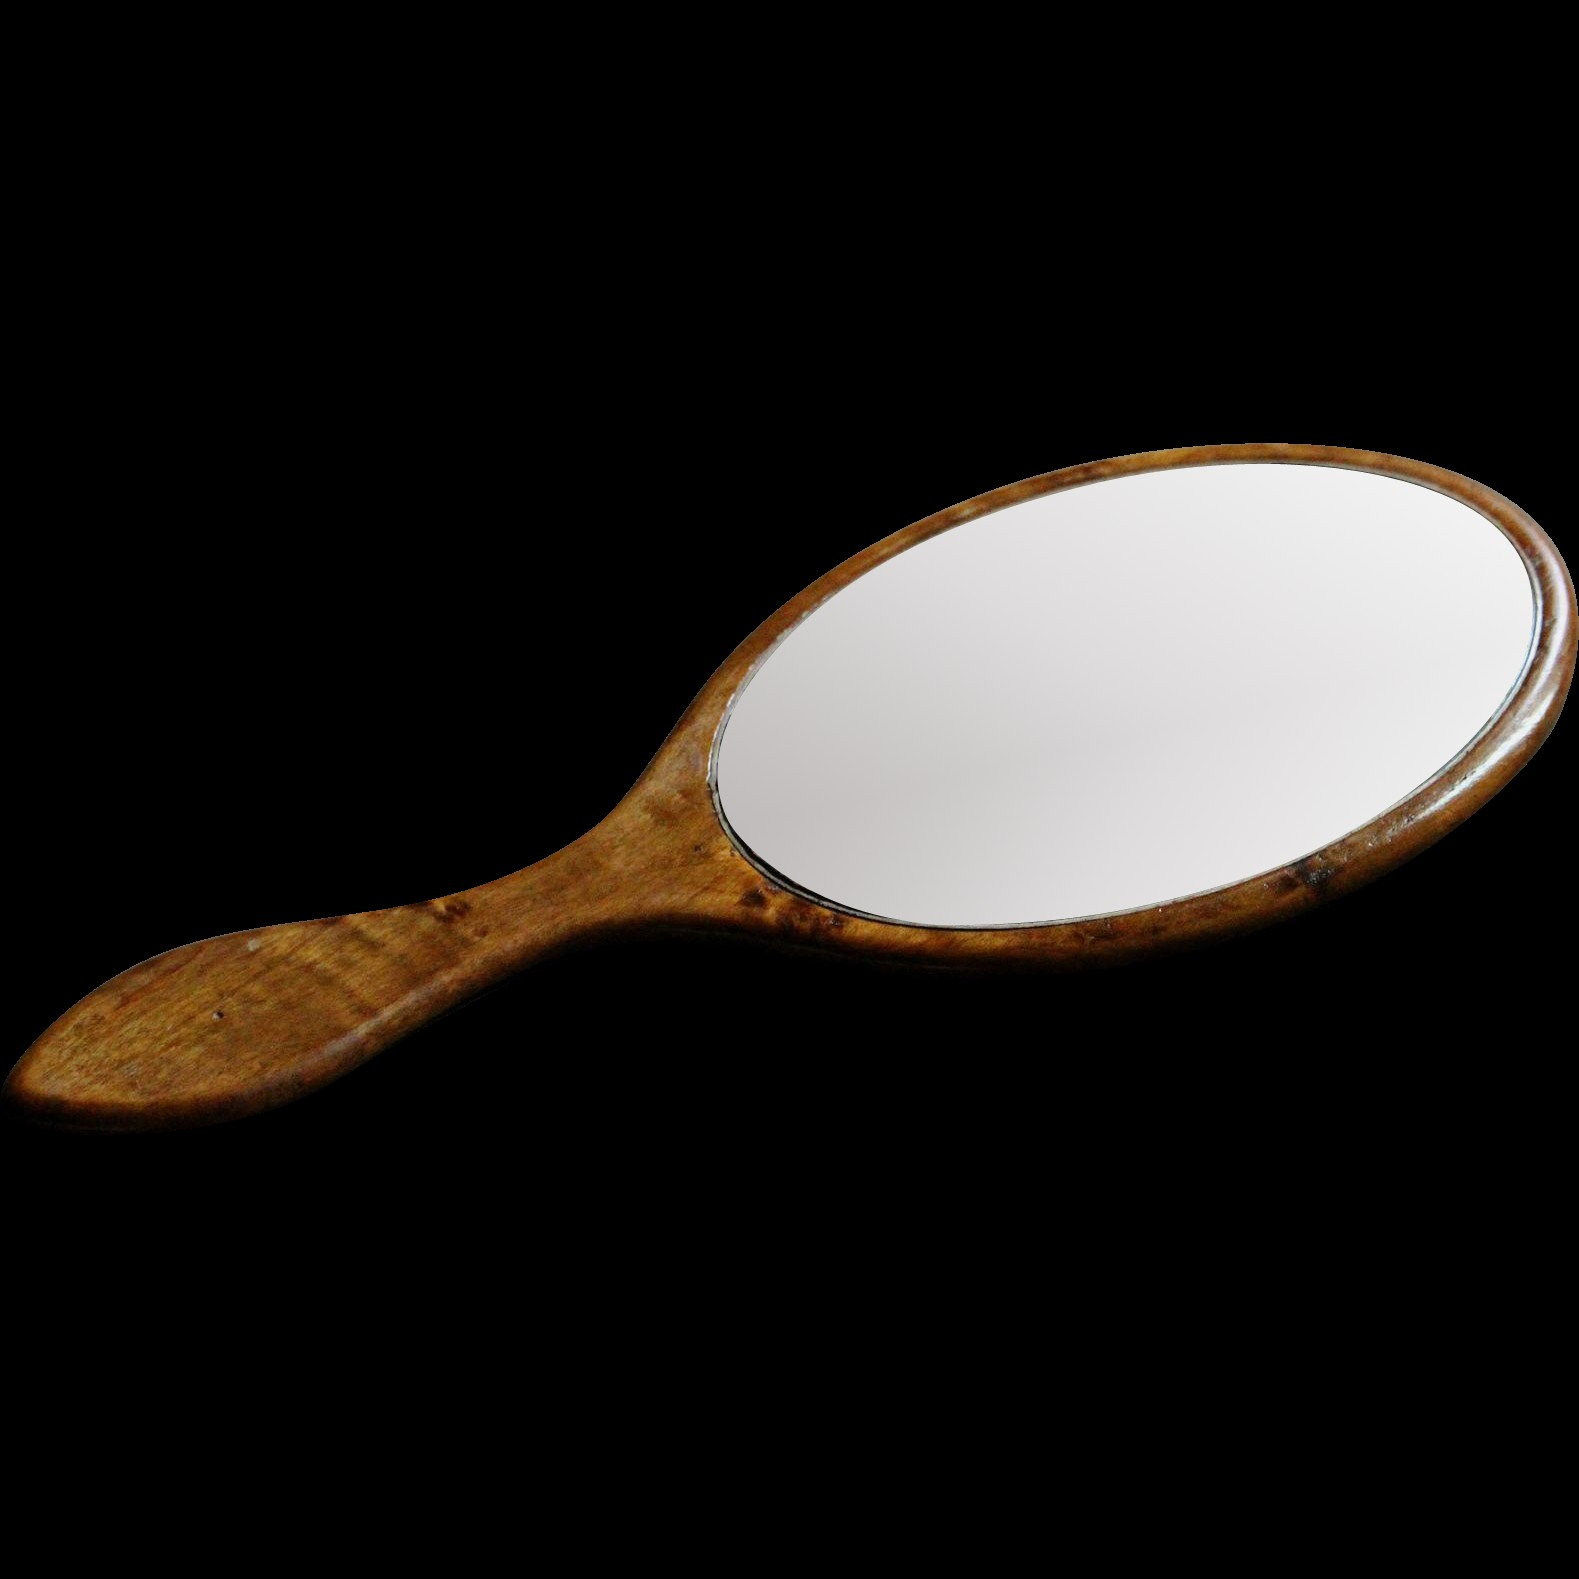 Antique English Hand Held Vanity Mirror Victorian Late 19th